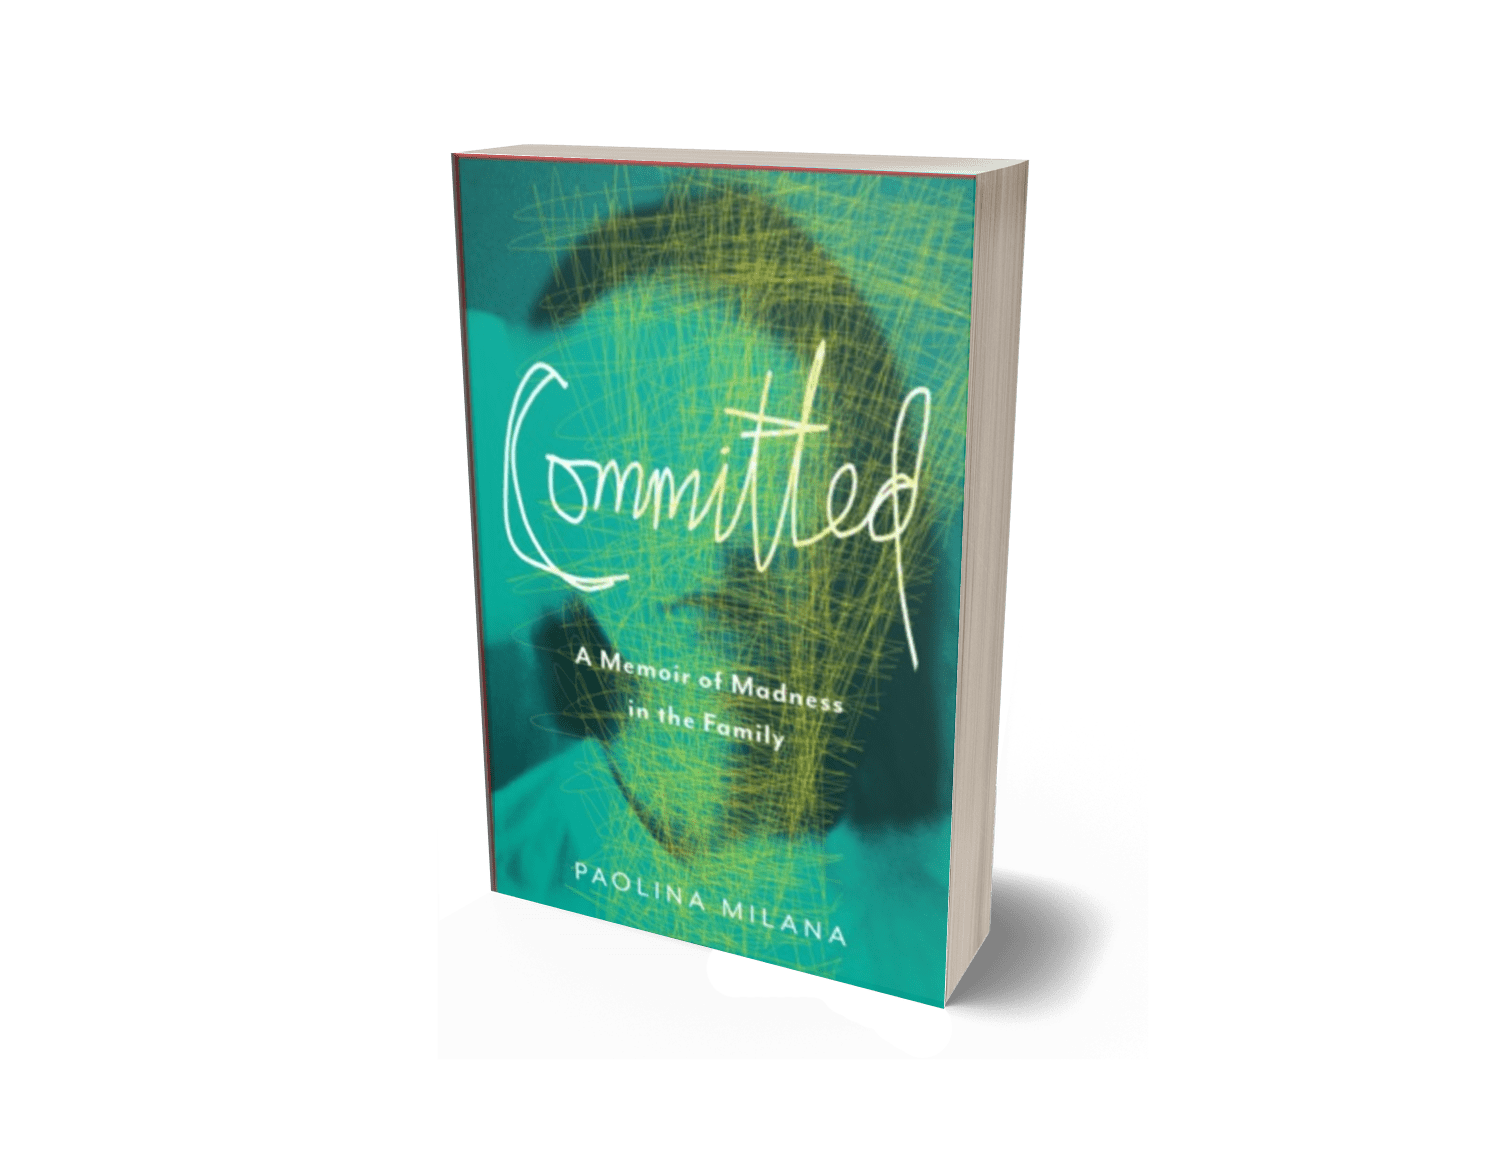 Committed: A Memoir of Madness in the Family